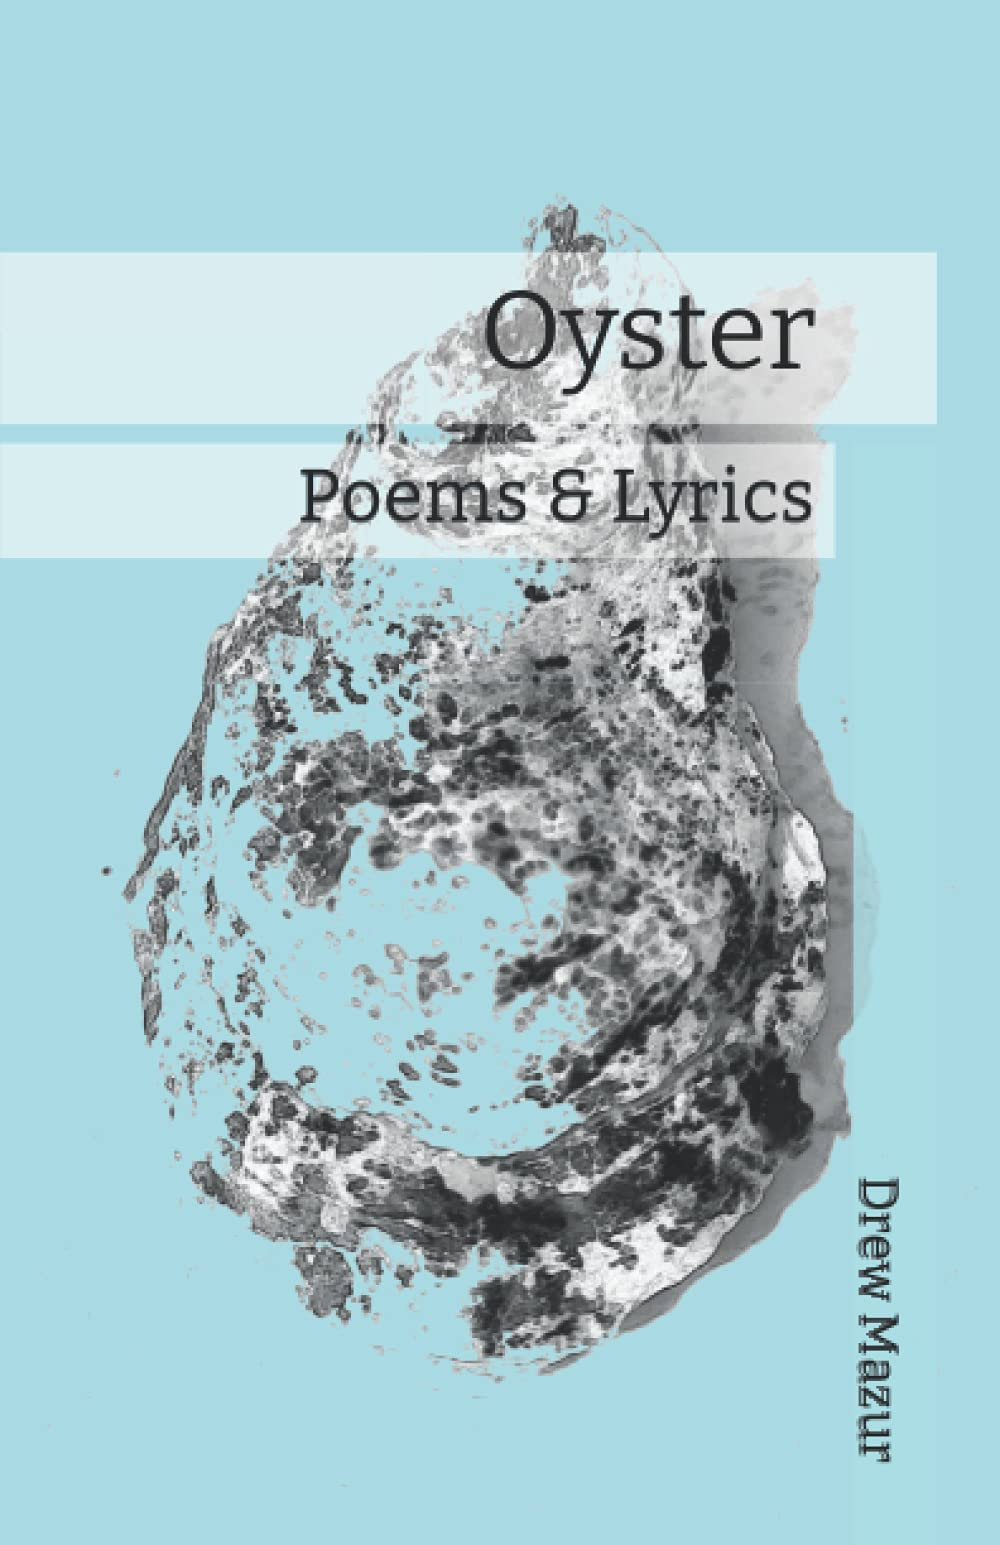 Oyster cover